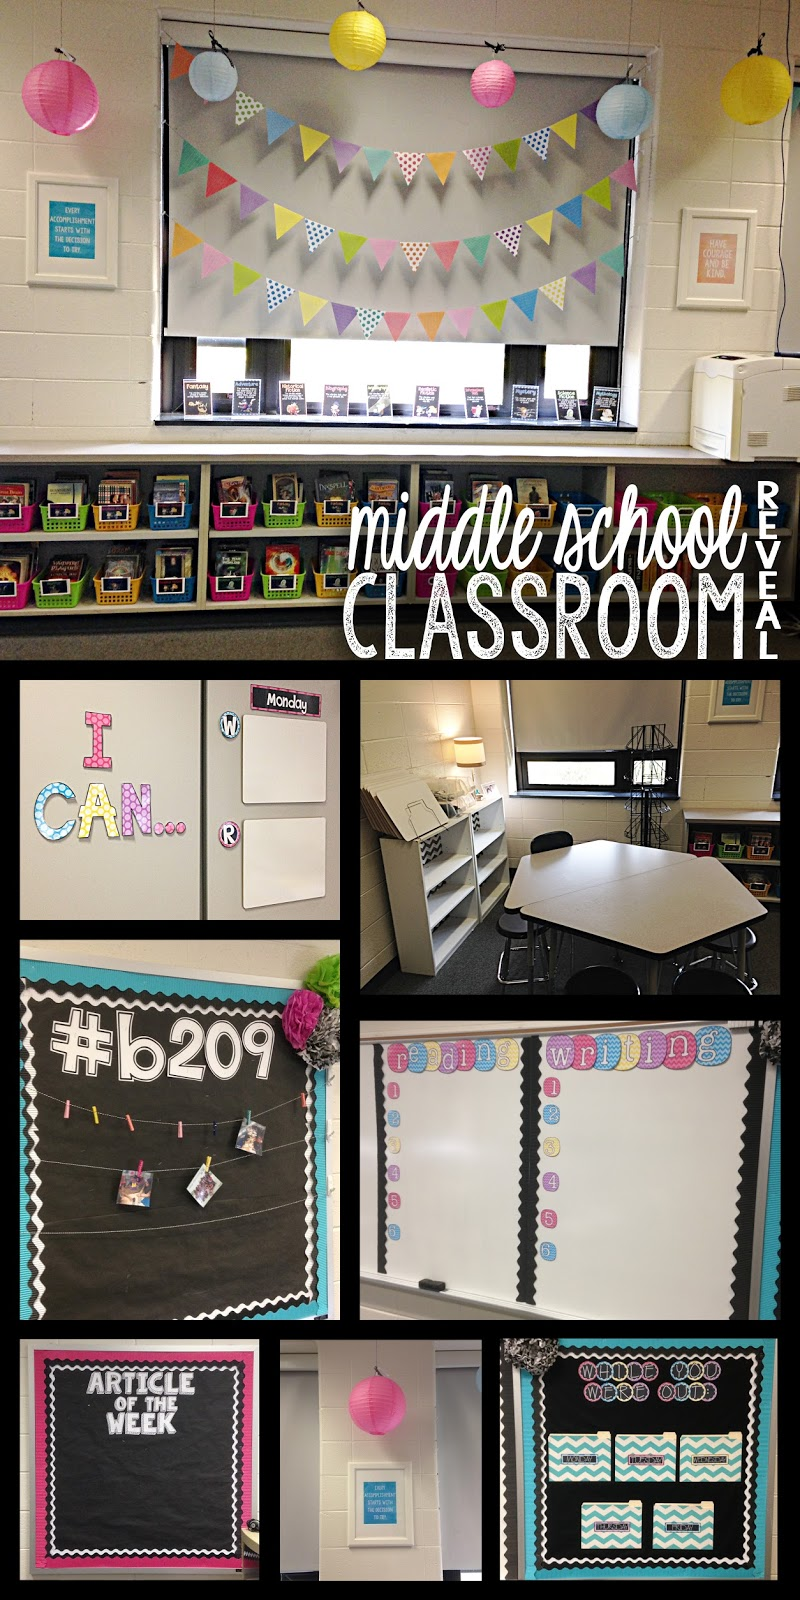 Classroom Organization Ideas Middle School ~ Musings from the middle school classroom reveal